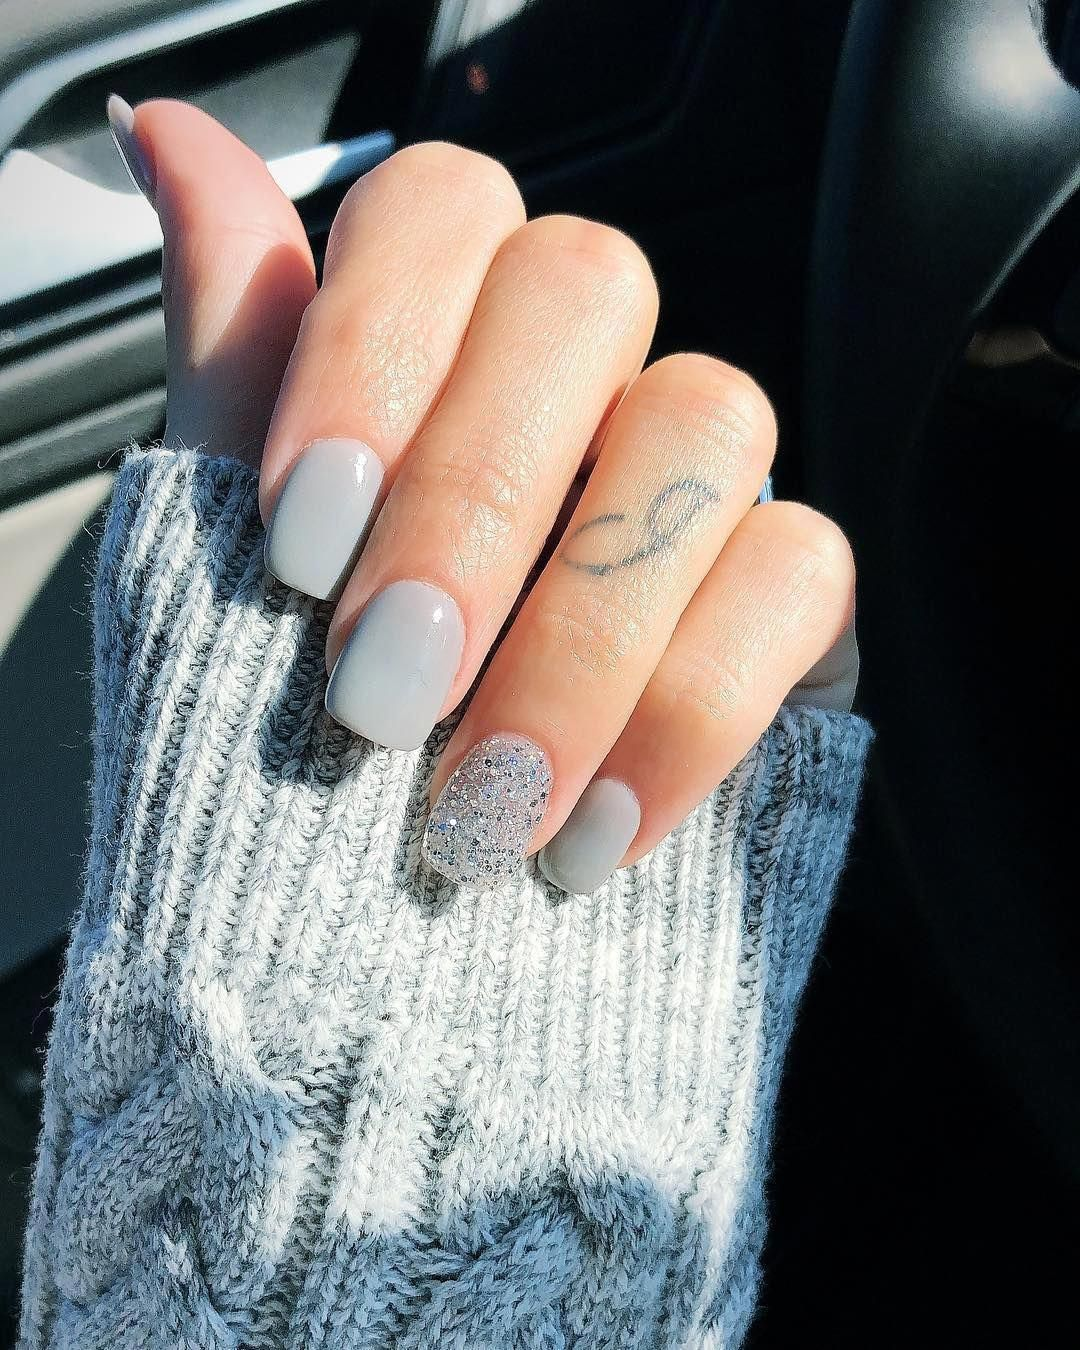 Mariana Alves On Instagram Never Been So Happy With My Nails Before Snsnails For The First Time An In 2020 Sns Nails Colors Trendy Nails Short Acrylic Nails